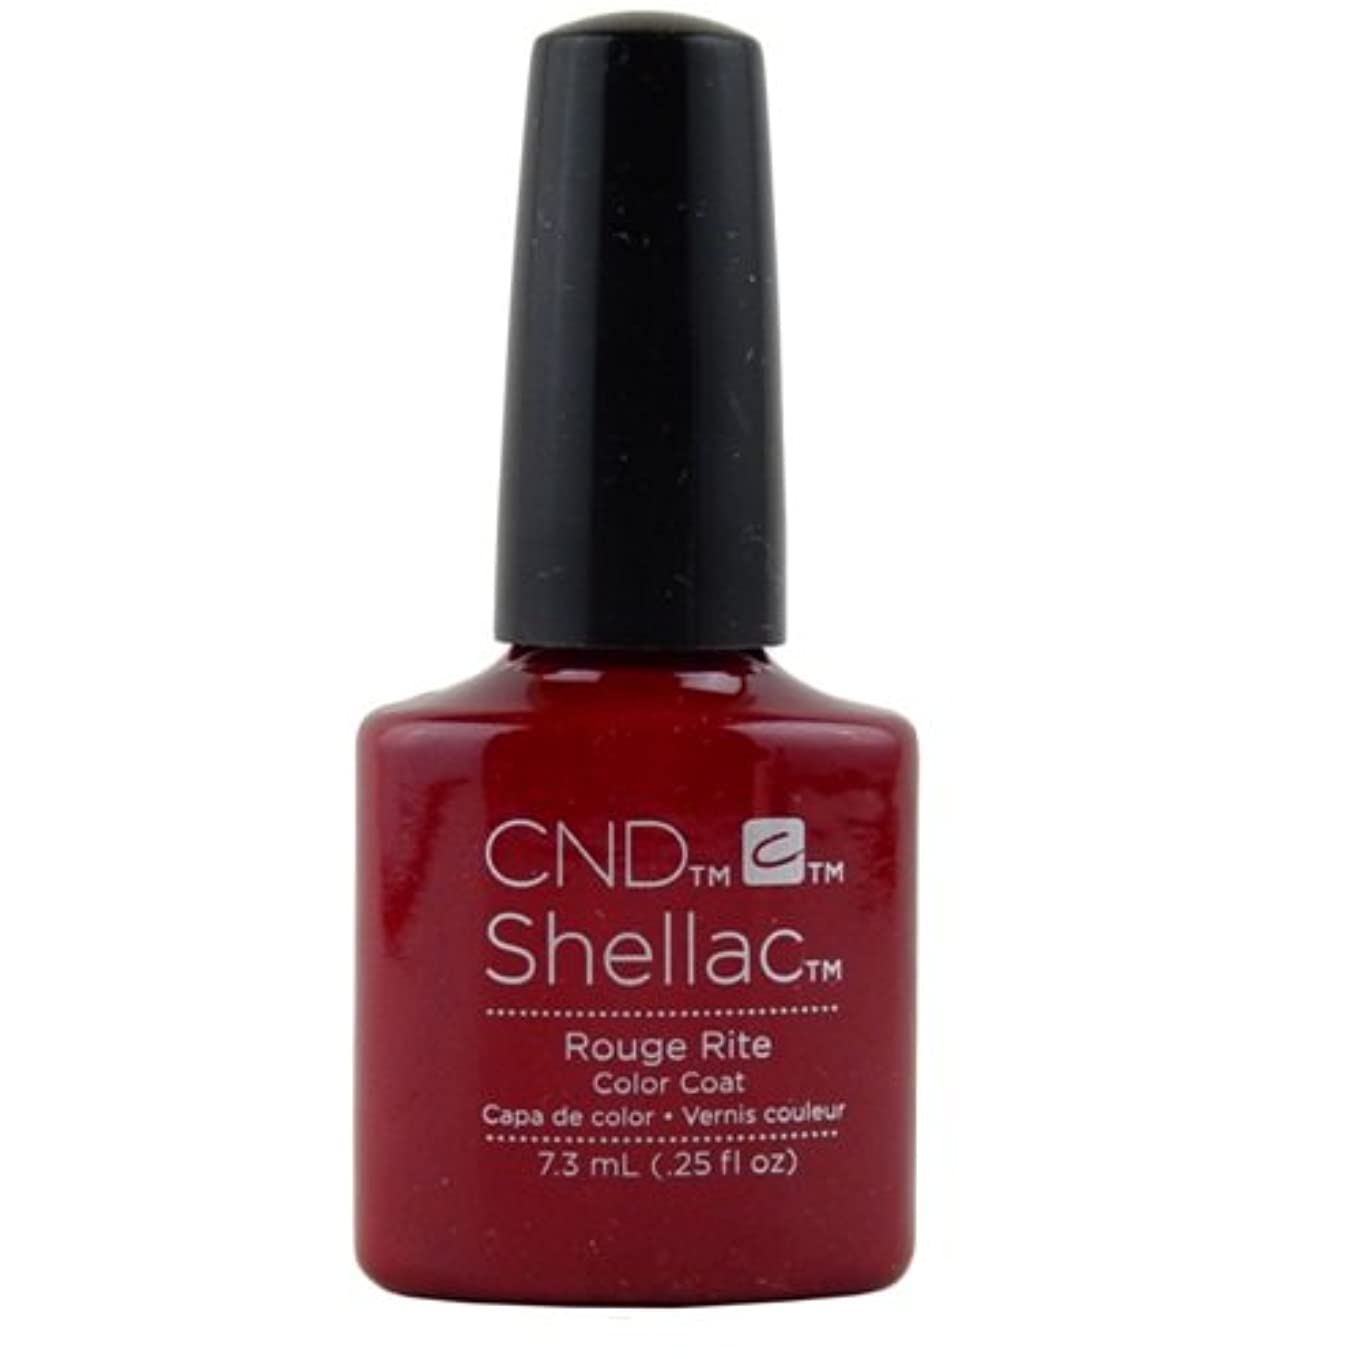 CND Shellac Gel Polish - Rouge Rite - 0.25oz / 7.3ml